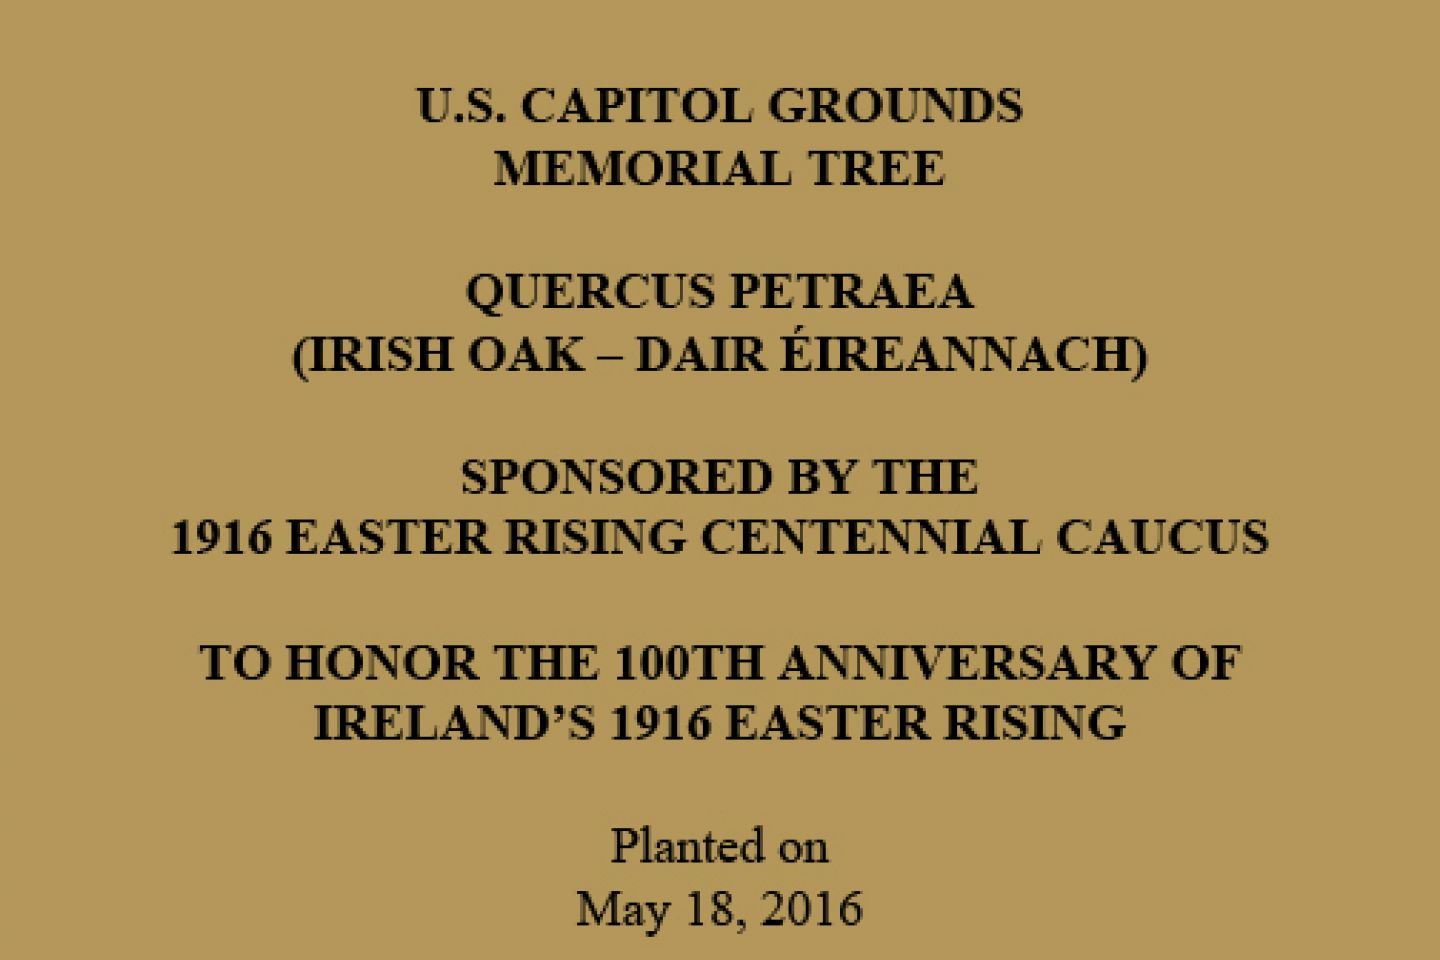 U.S. CAPITOL GROUNDS  COMMEMORATIVE TREE  QUERCUS PETRAEA (IRISH OAK – DAIR ÉIREANNACH)  SPONSORED BY THE 1916 EASTER RISING CENTENNIAL CAUCUS  TO HONOR THE 100th ANNIVERSARY OF IRELAND'S 1916 EASTER RISING  Planted on May 18, 2016